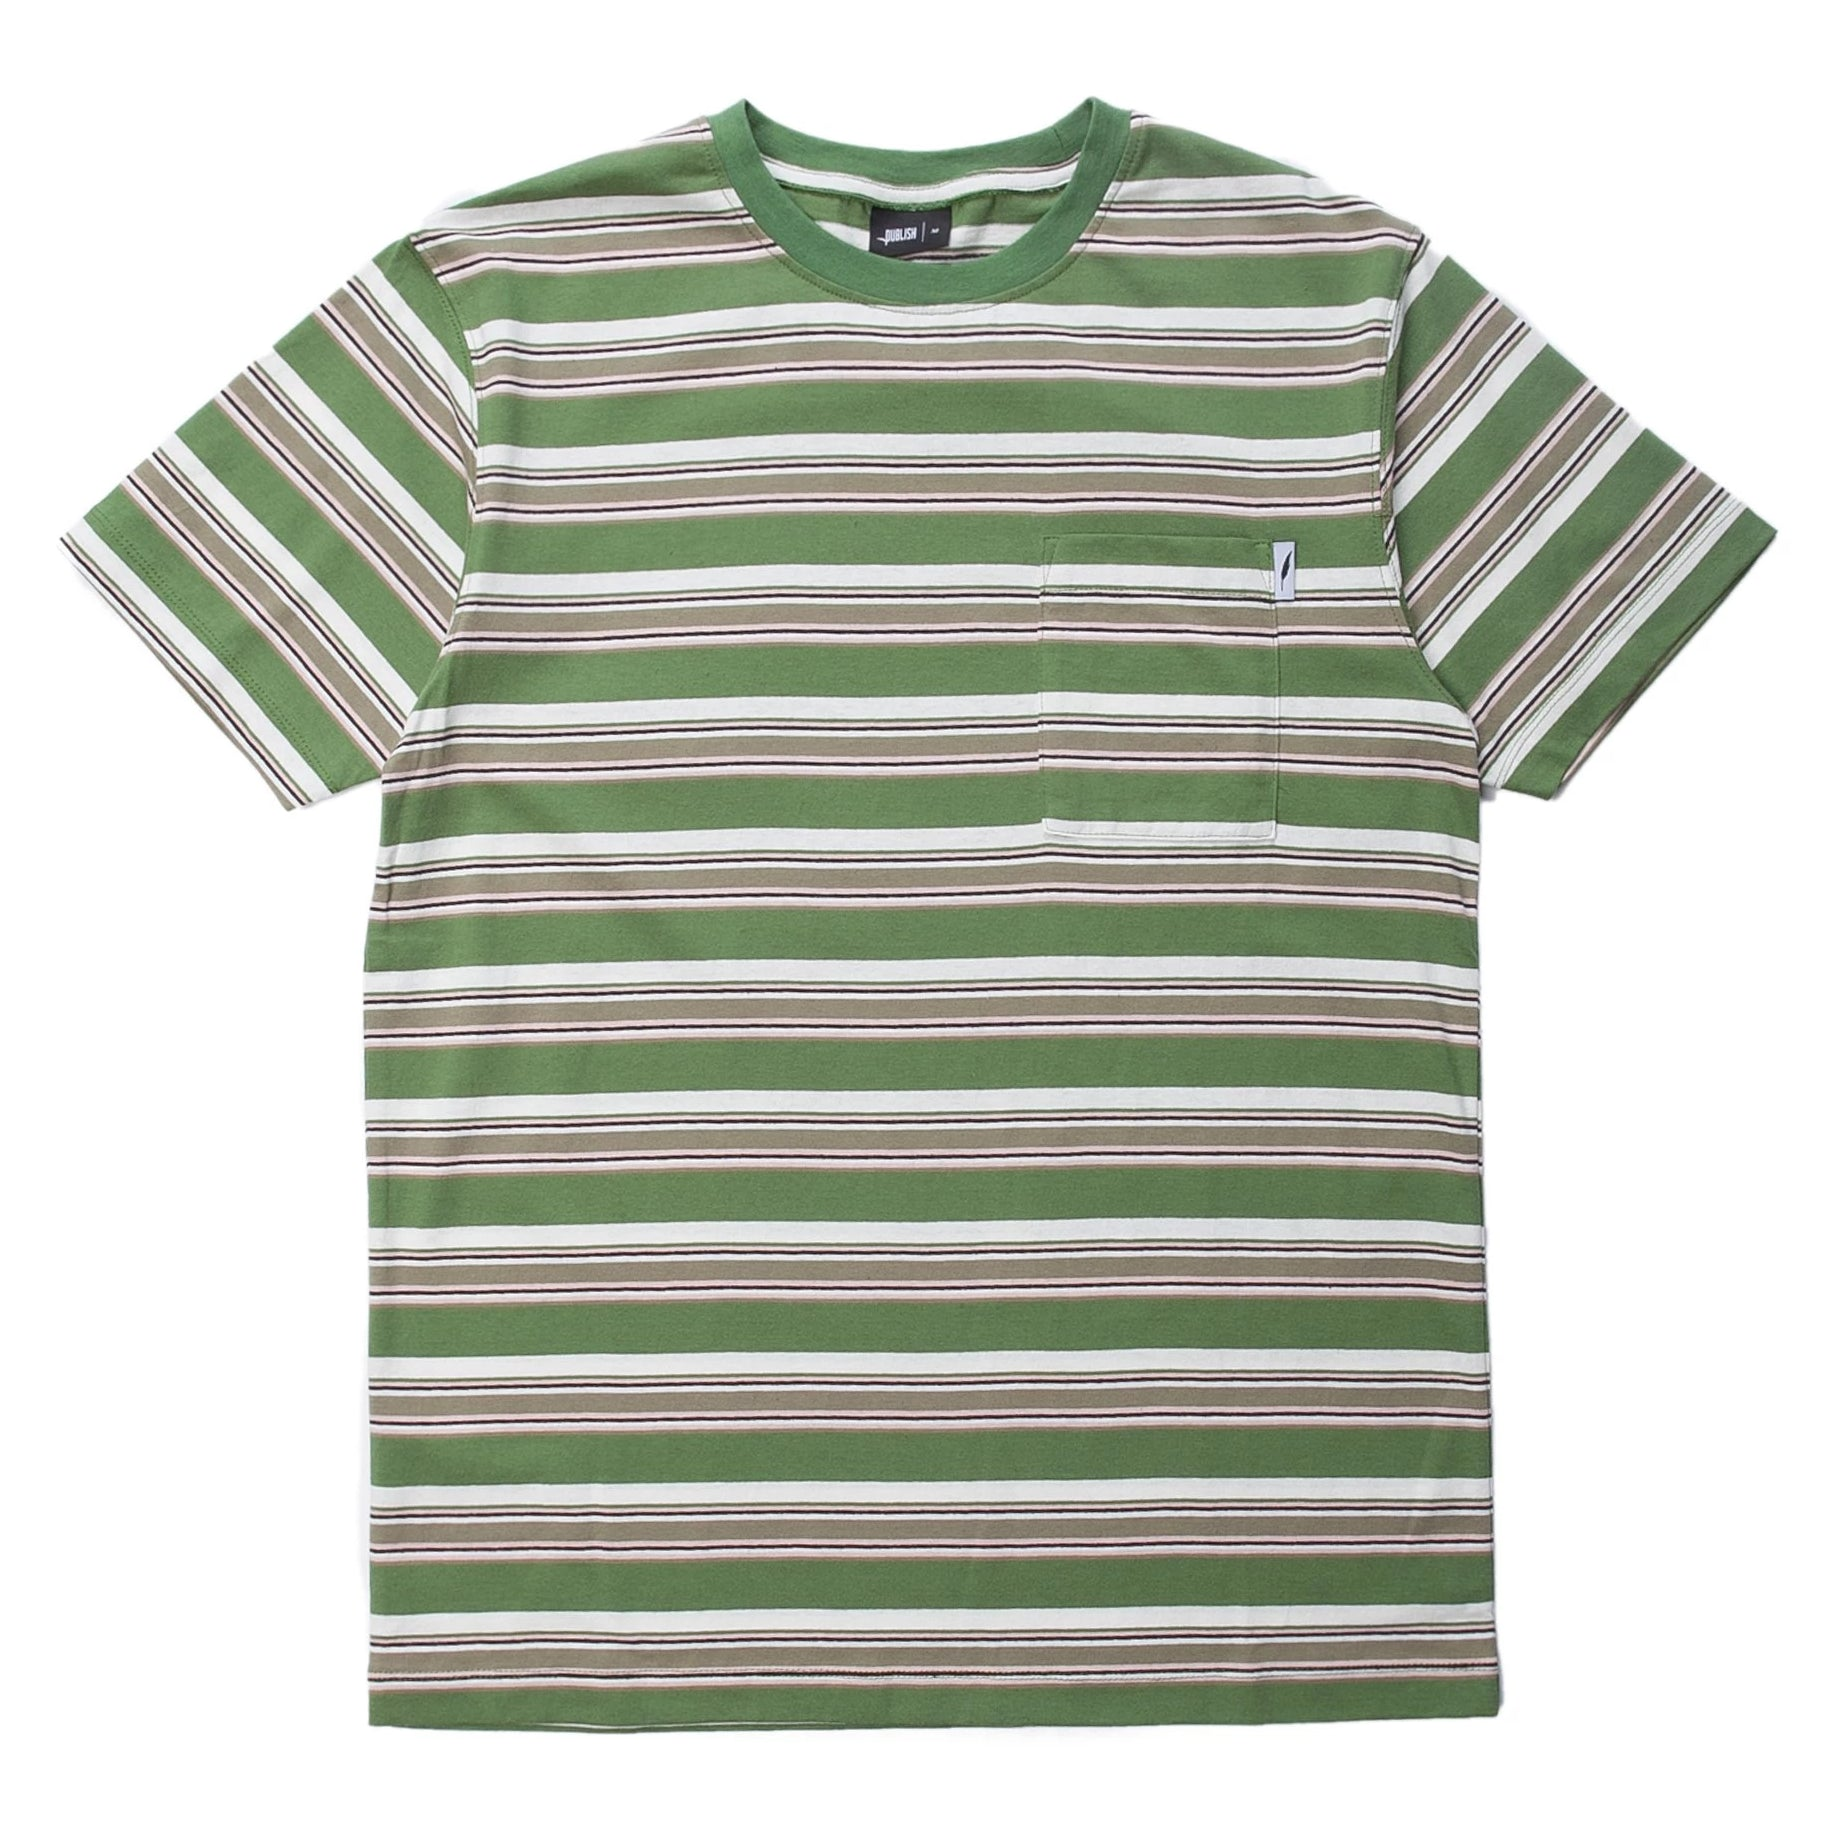 Aguie Short Sleeve Shirt (Green)